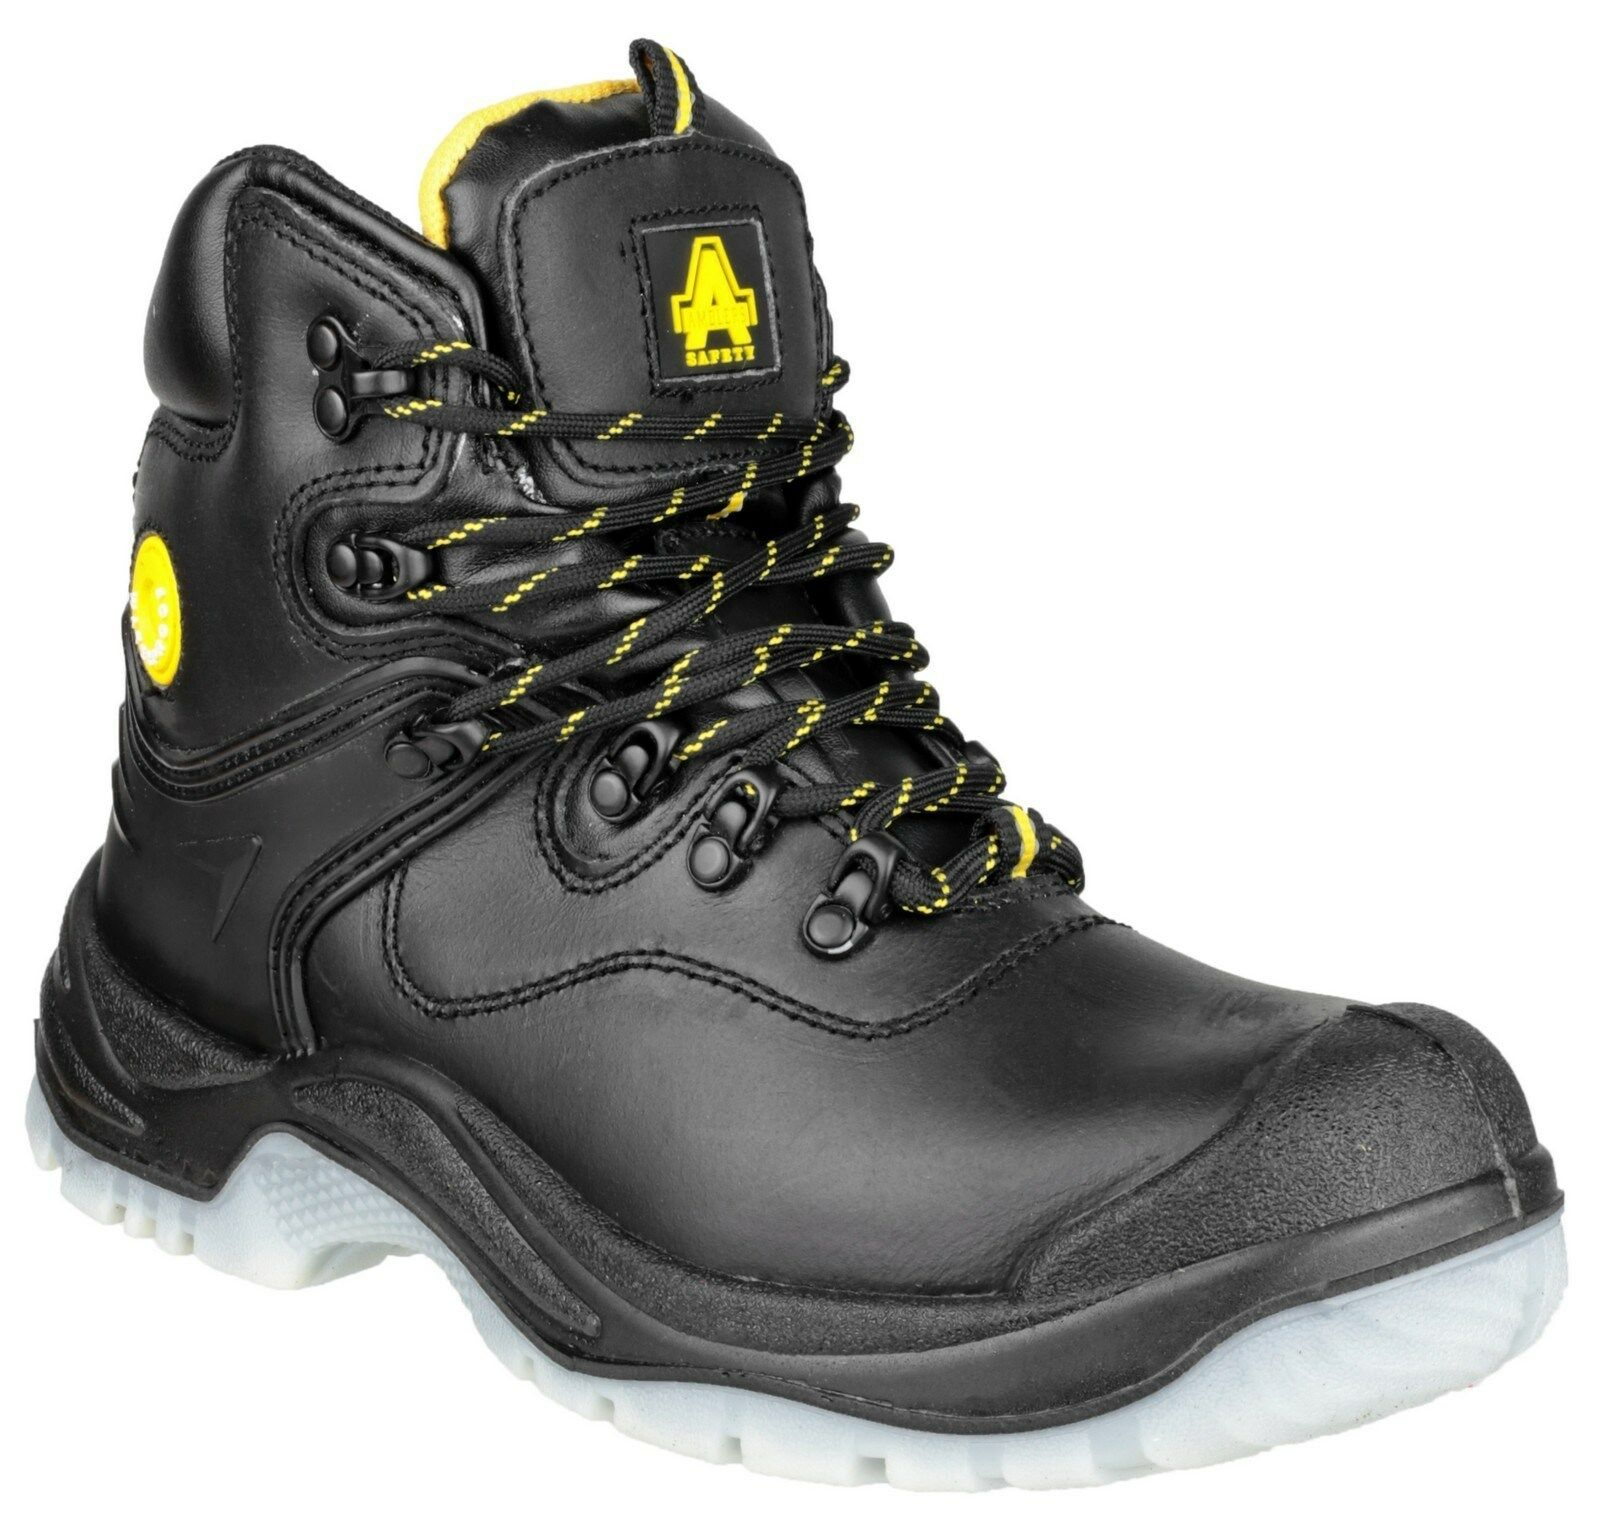 Amblers FS198 Safety Boots Mens Womens Waterproof Steel Toe Cap Work shoes